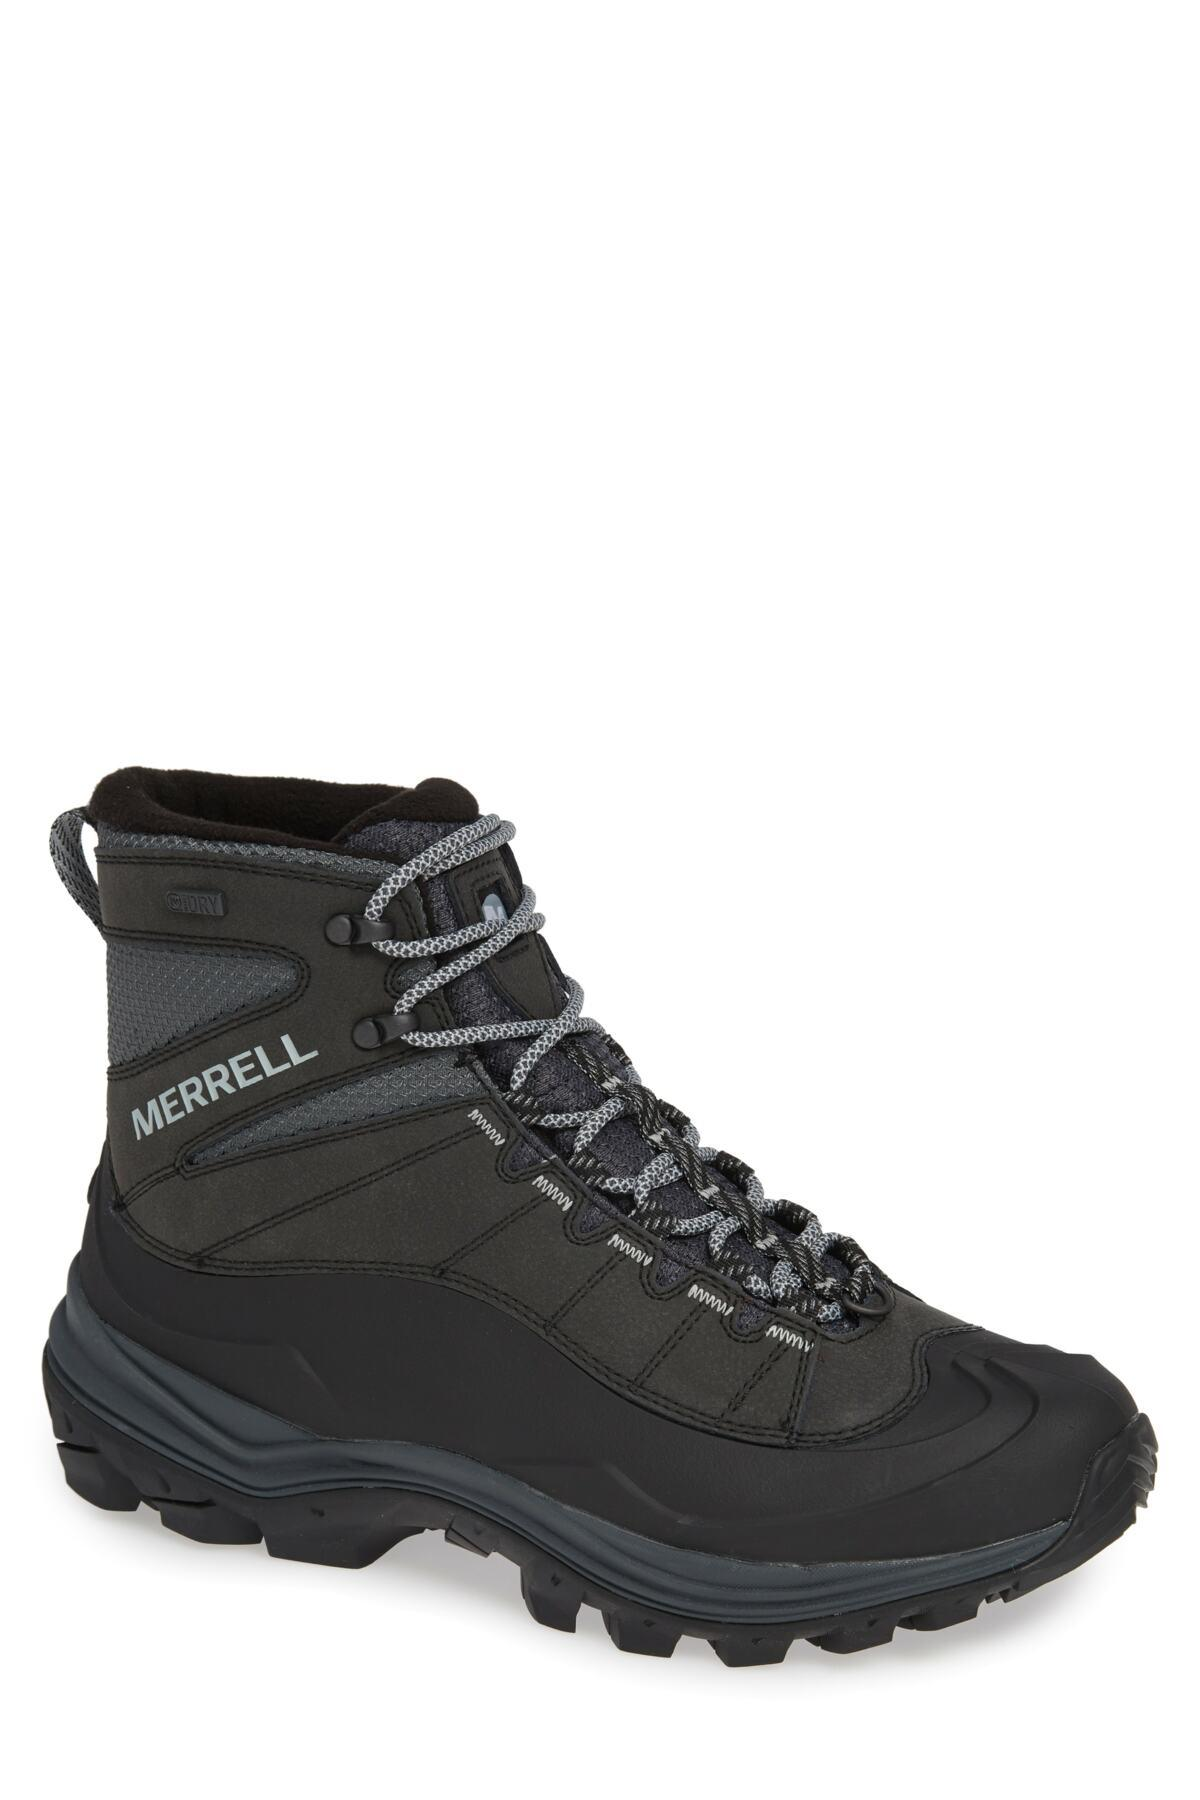 12f61a0a Lyst - Merrell Thermo Chill Waterproof Snow Boot (men) in Black for Men